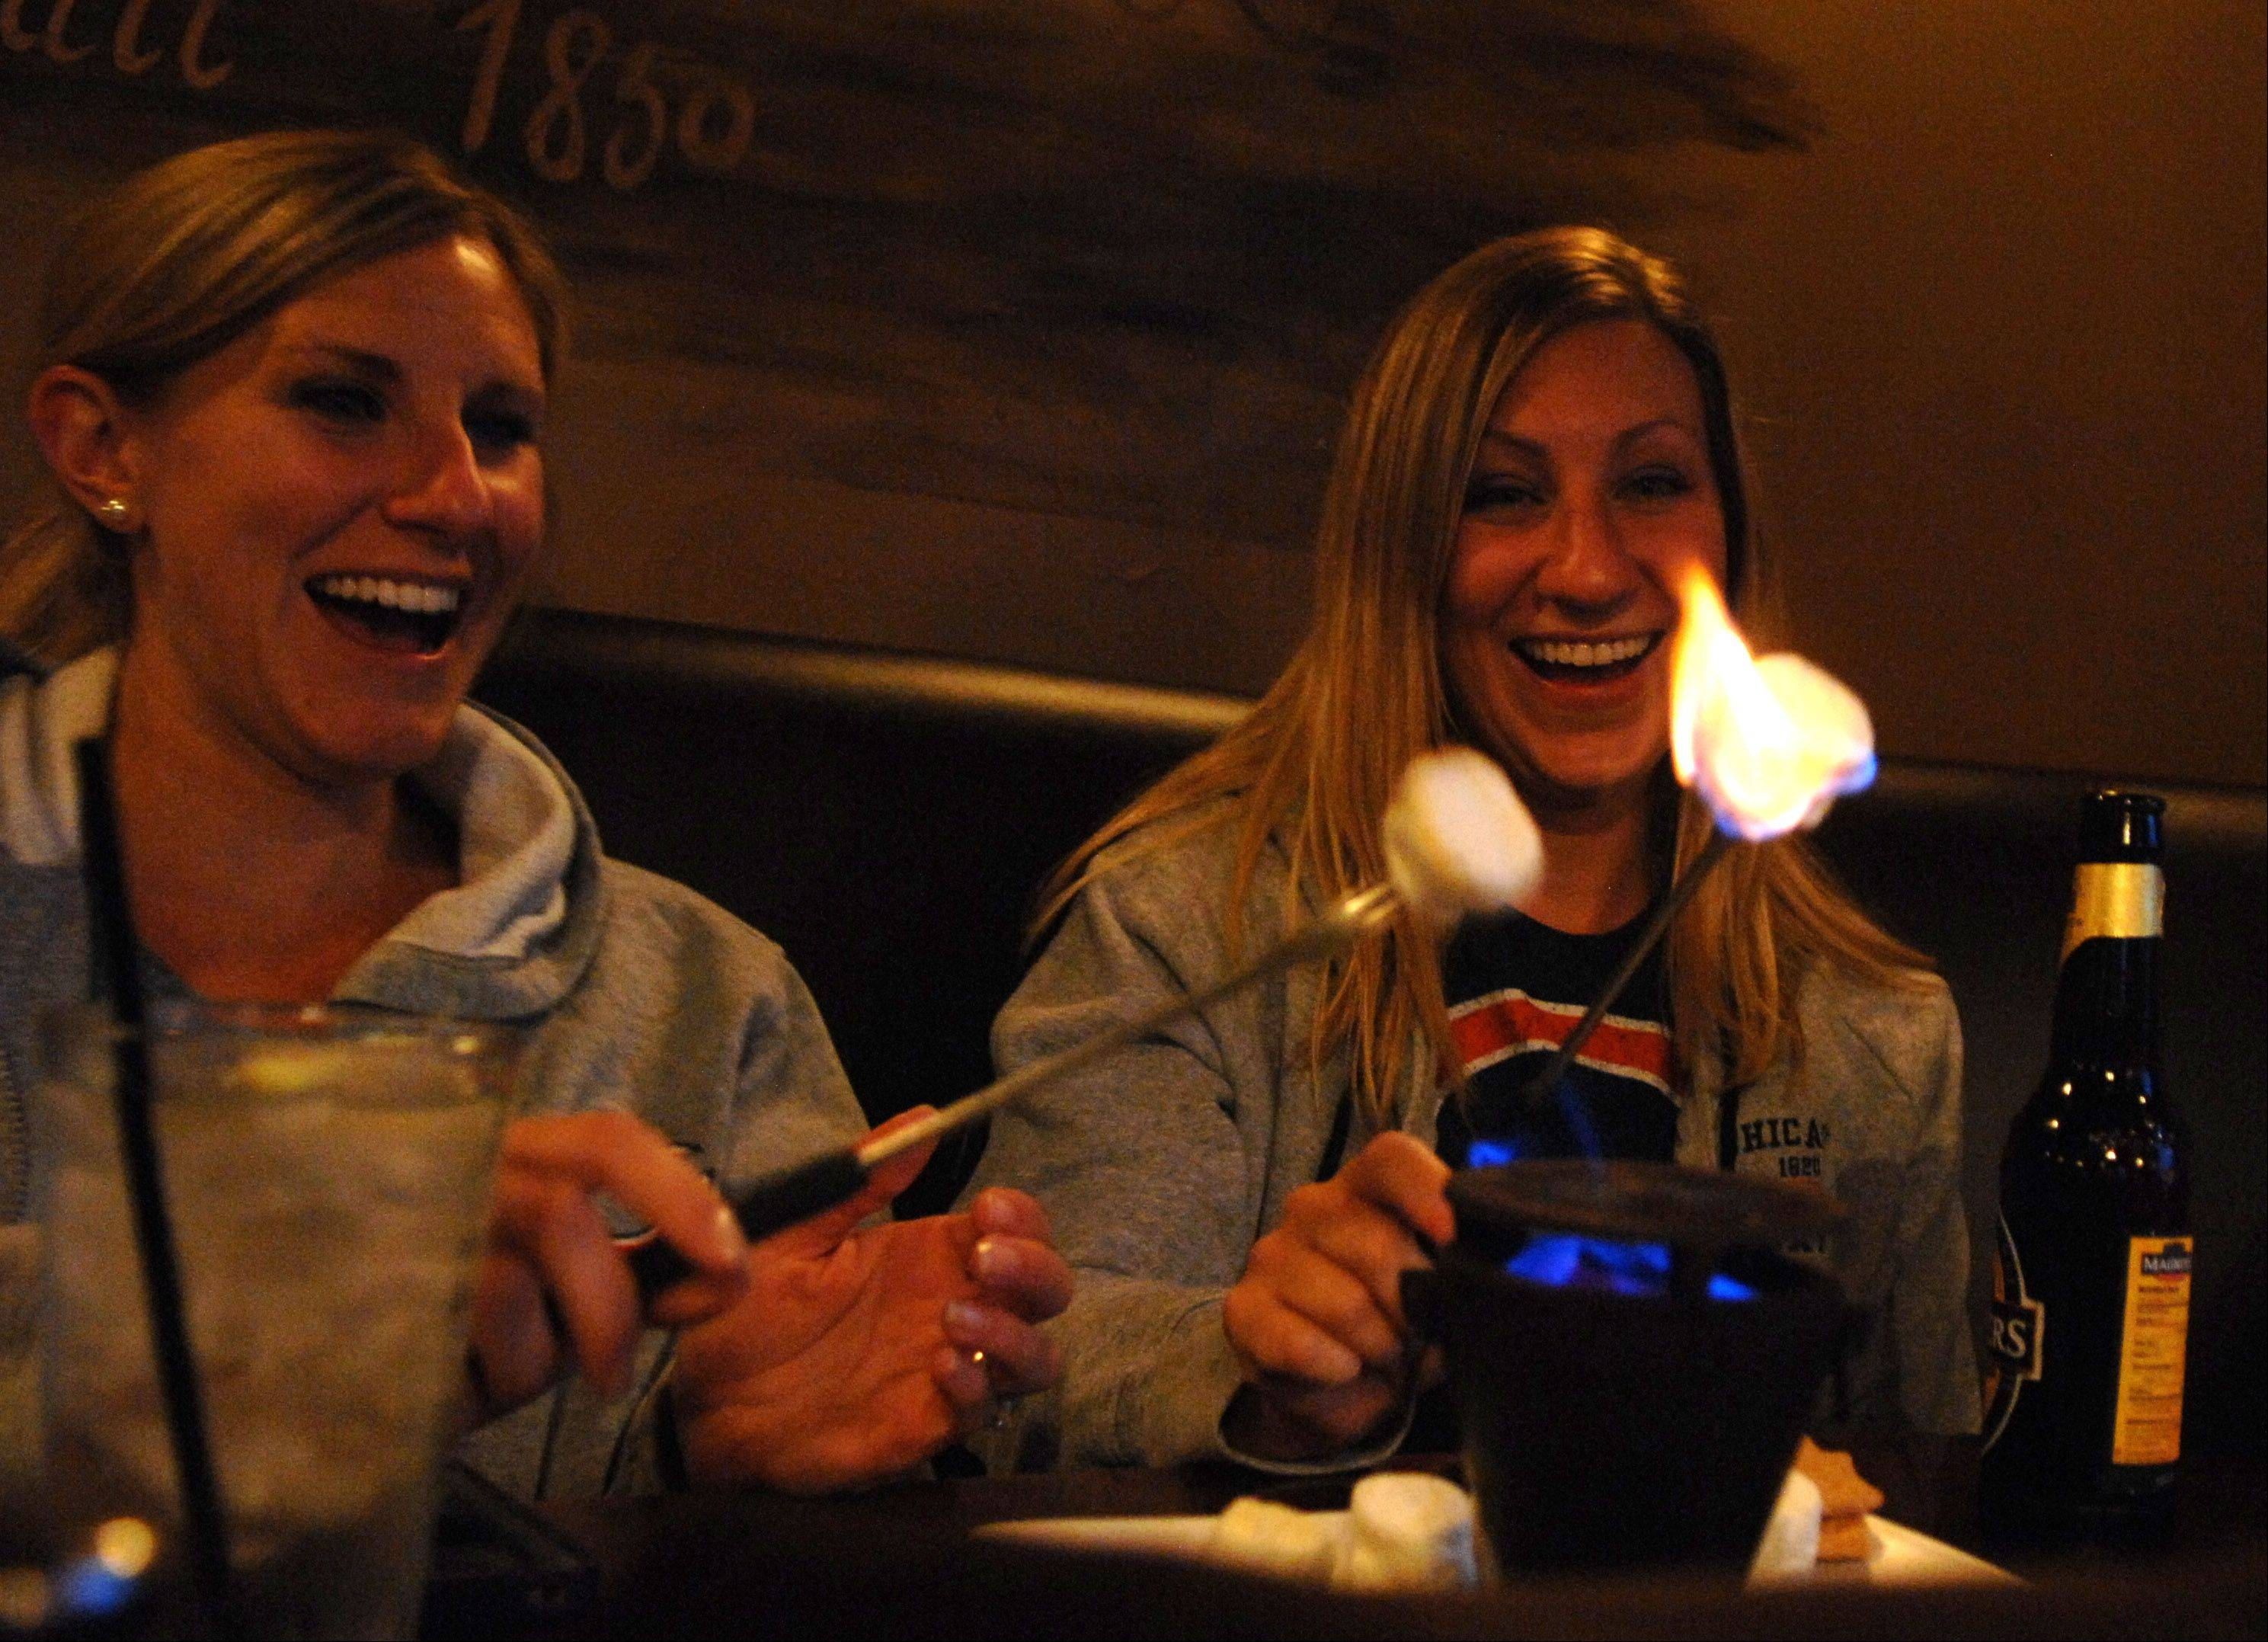 Danielle Weyant, left, and Lindsay Sorci, both of St. Charles, set their marshmallows aflame after ordering the s'mores for dessert at The Office in St. Charles.